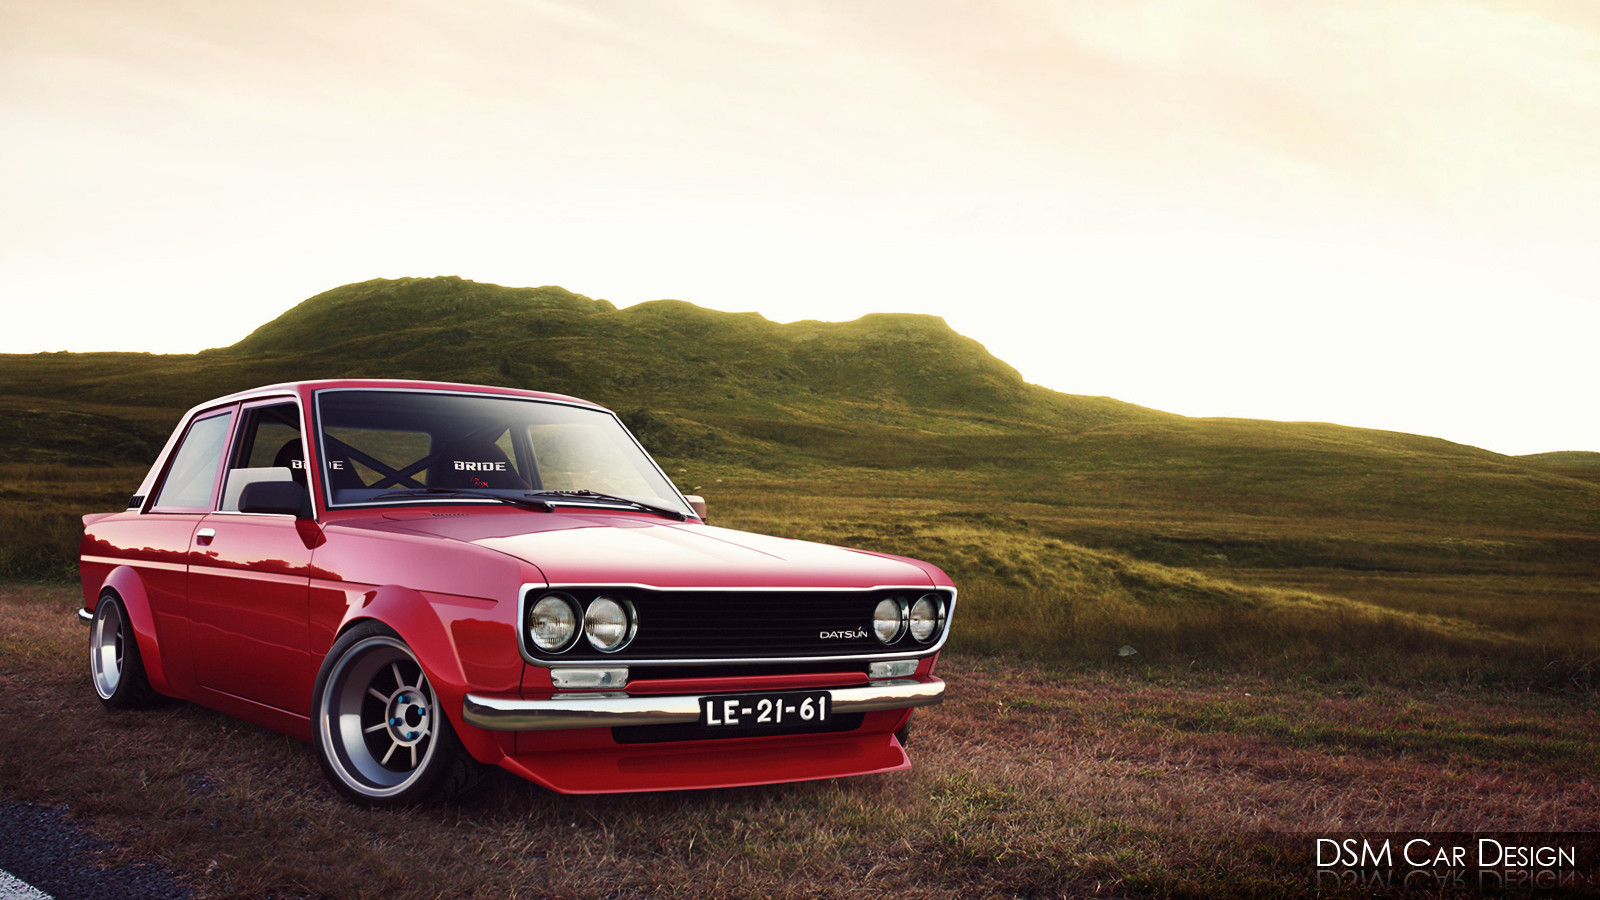 Datsun 510 4 Door Flares wallpaper 1024x768 8118 1600x900